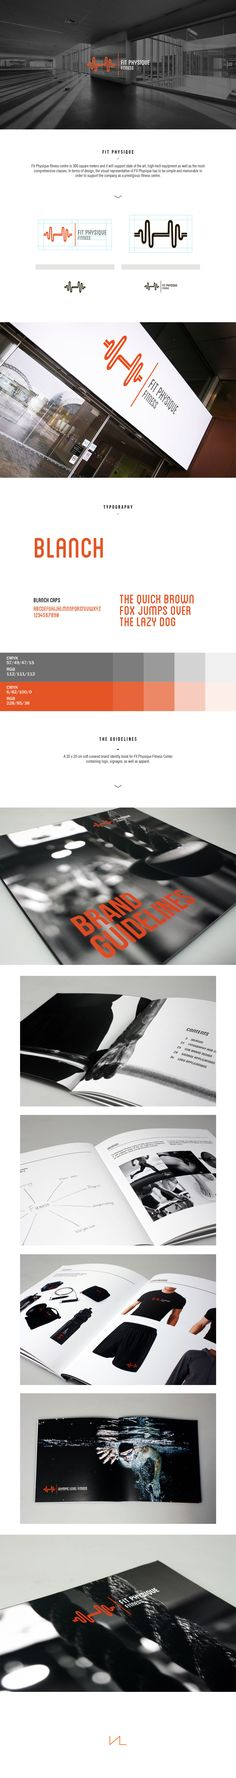 Fit Physique - Brand Identity on Behance